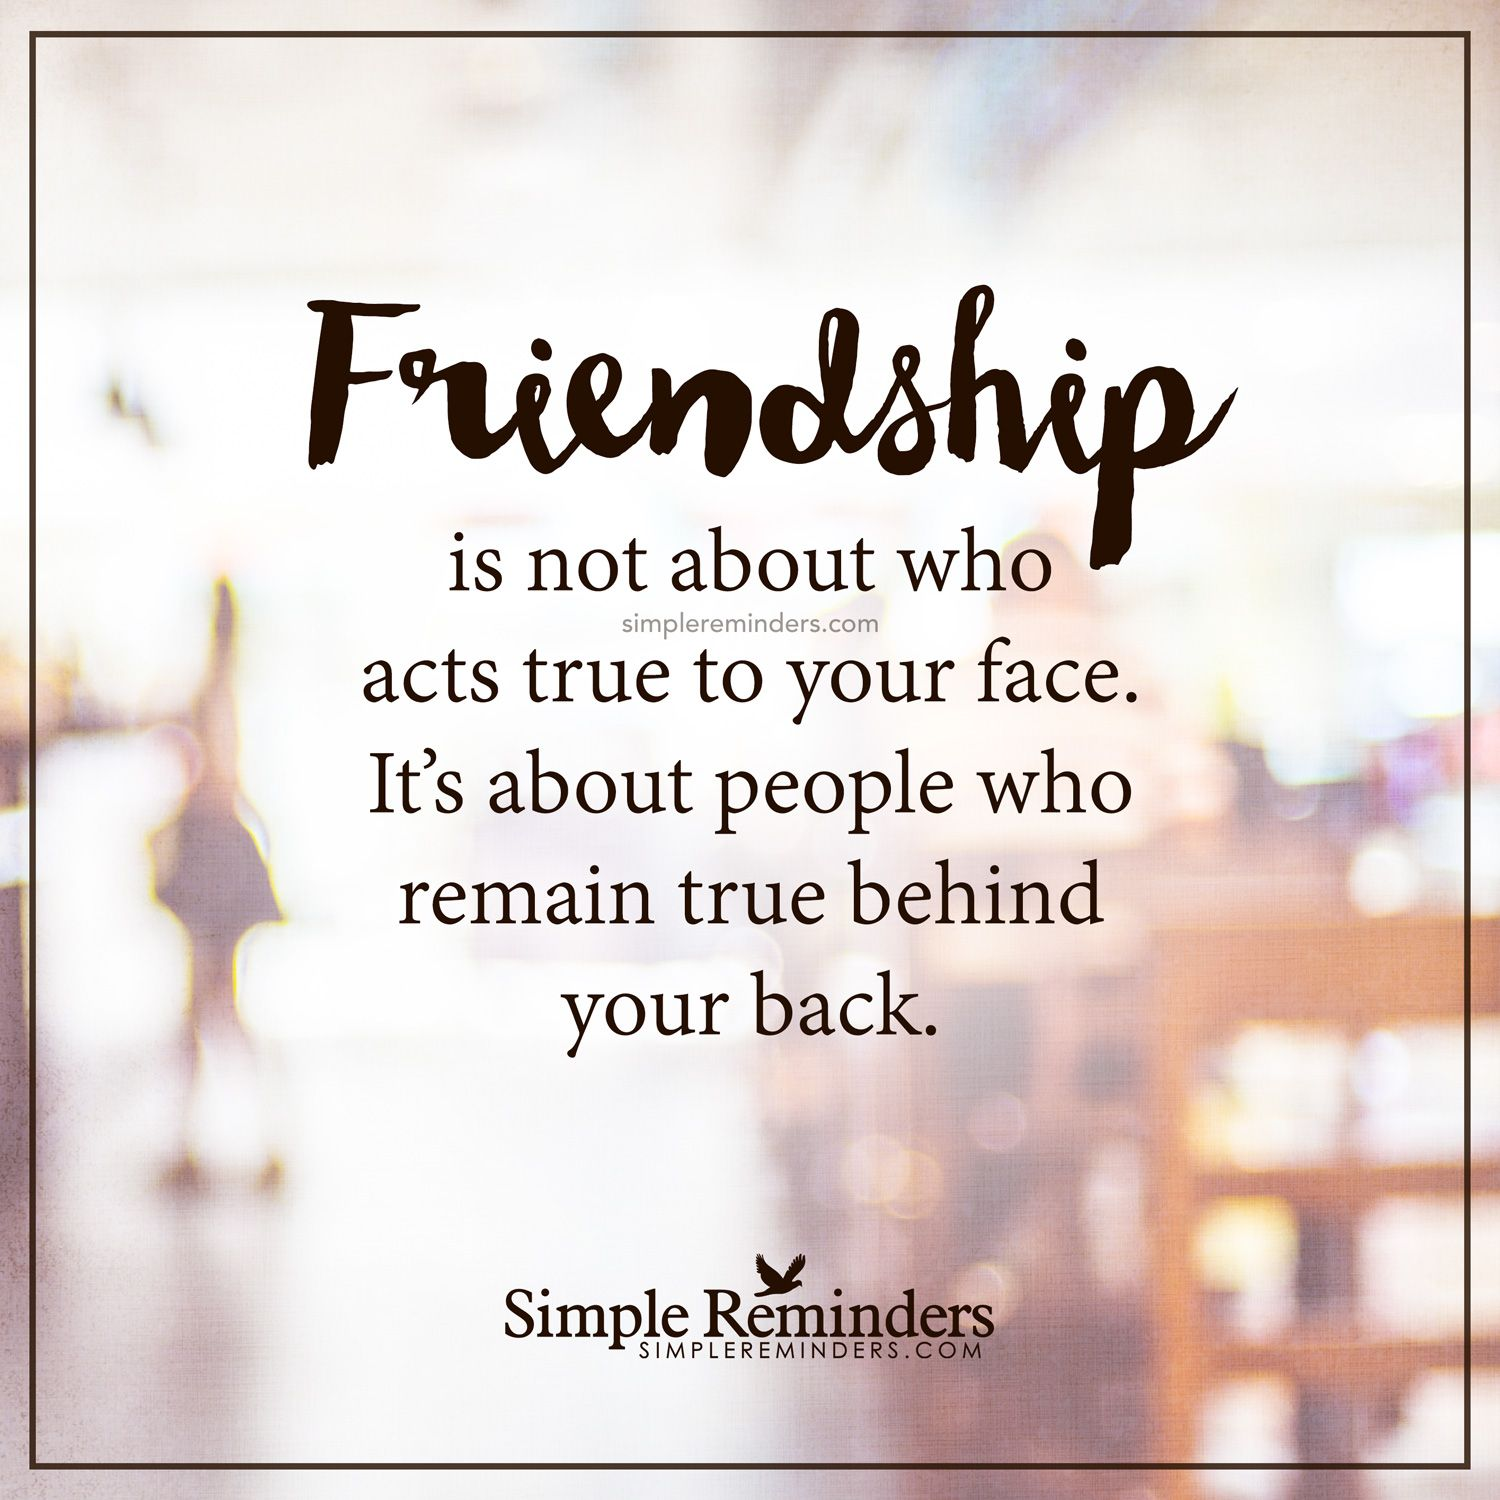 Photo Quotes About Friendship: Friendship Is Not Friendship Is Not About Who Acts True To